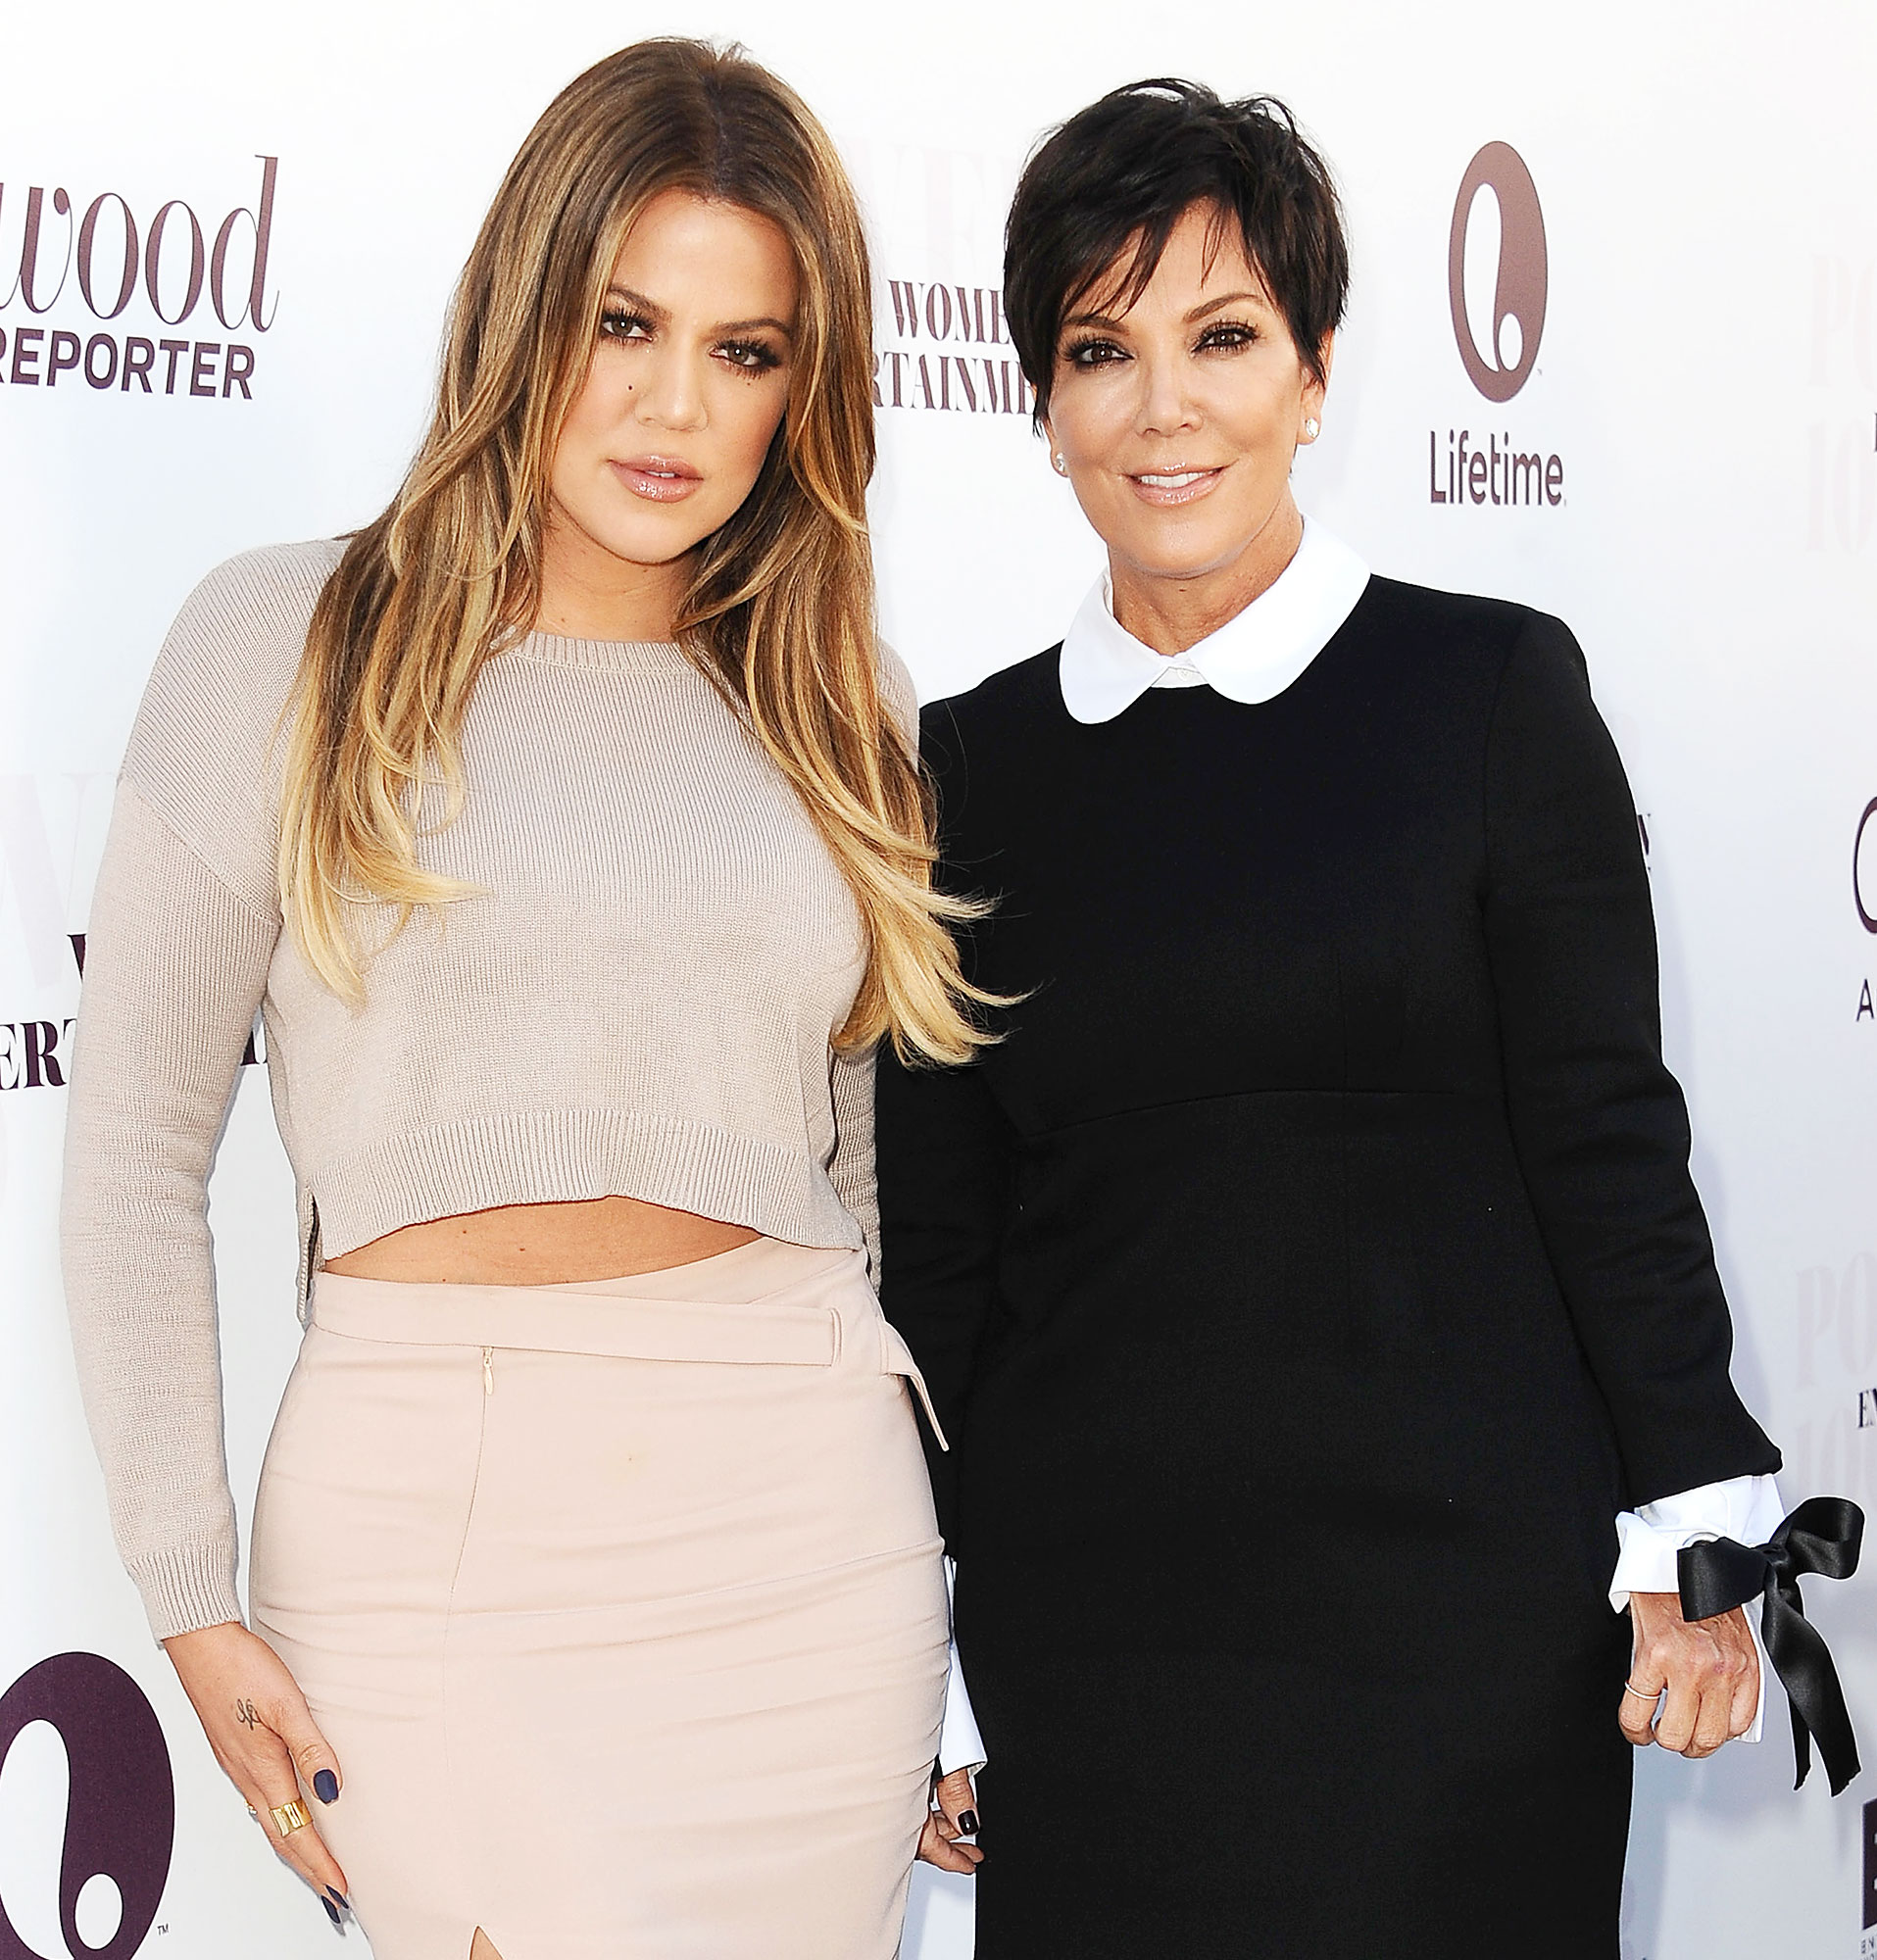 """Khloe Kardashian Jordyn Woods Tristan Thompson Cheating Scandal Kris Jenner Reacts - Kris broke her silence on the cheating scandal during an appearance on On Air With Ryan Seacrest . """"First of all, I pray about it,"""" the momager told Ryan Seacrest."""